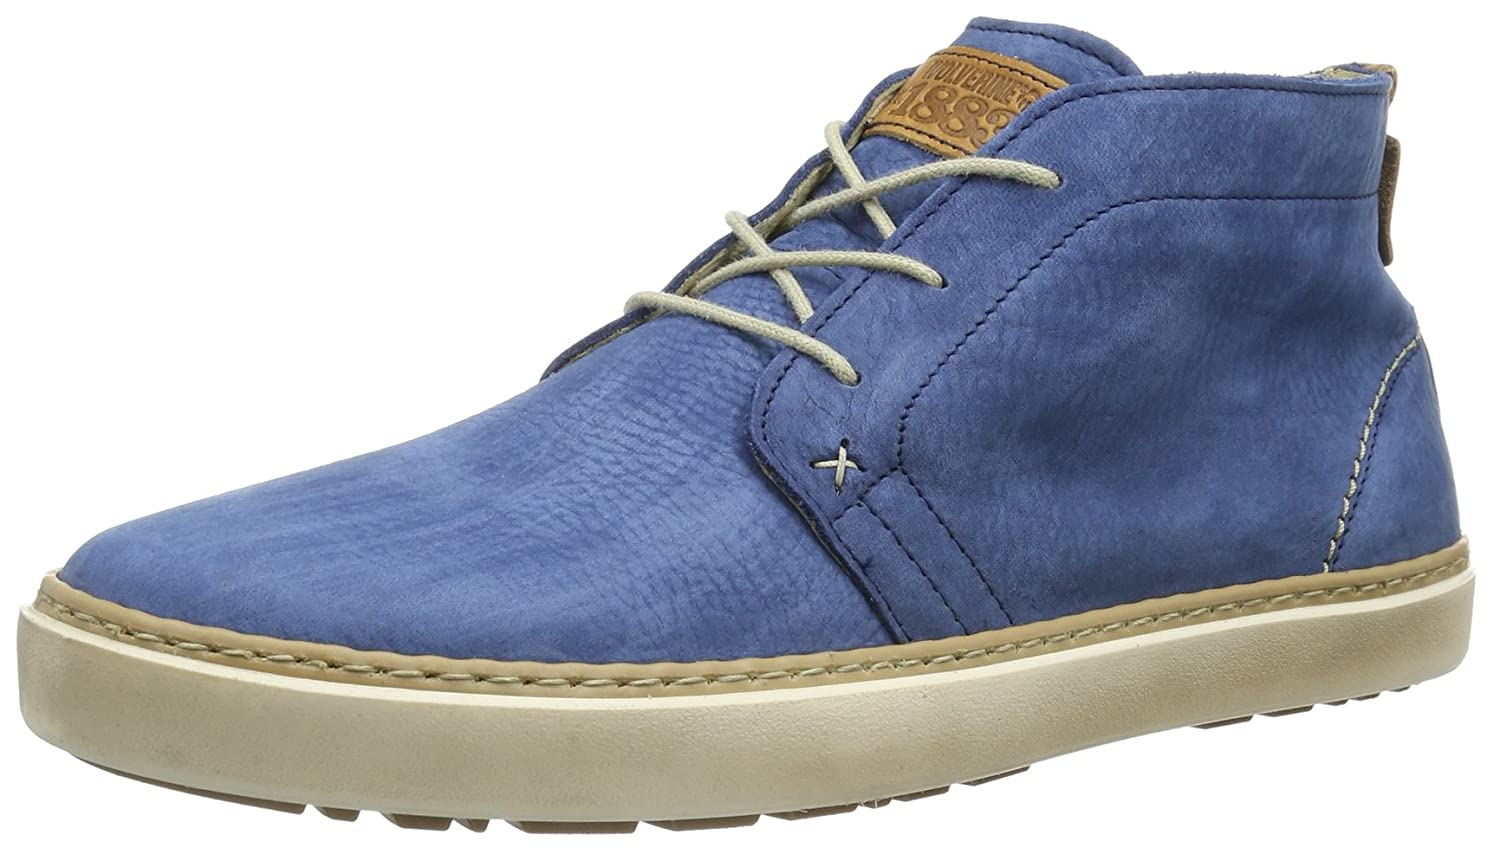 1883 by Wolverine Men's Alberto Fashion Sneaker